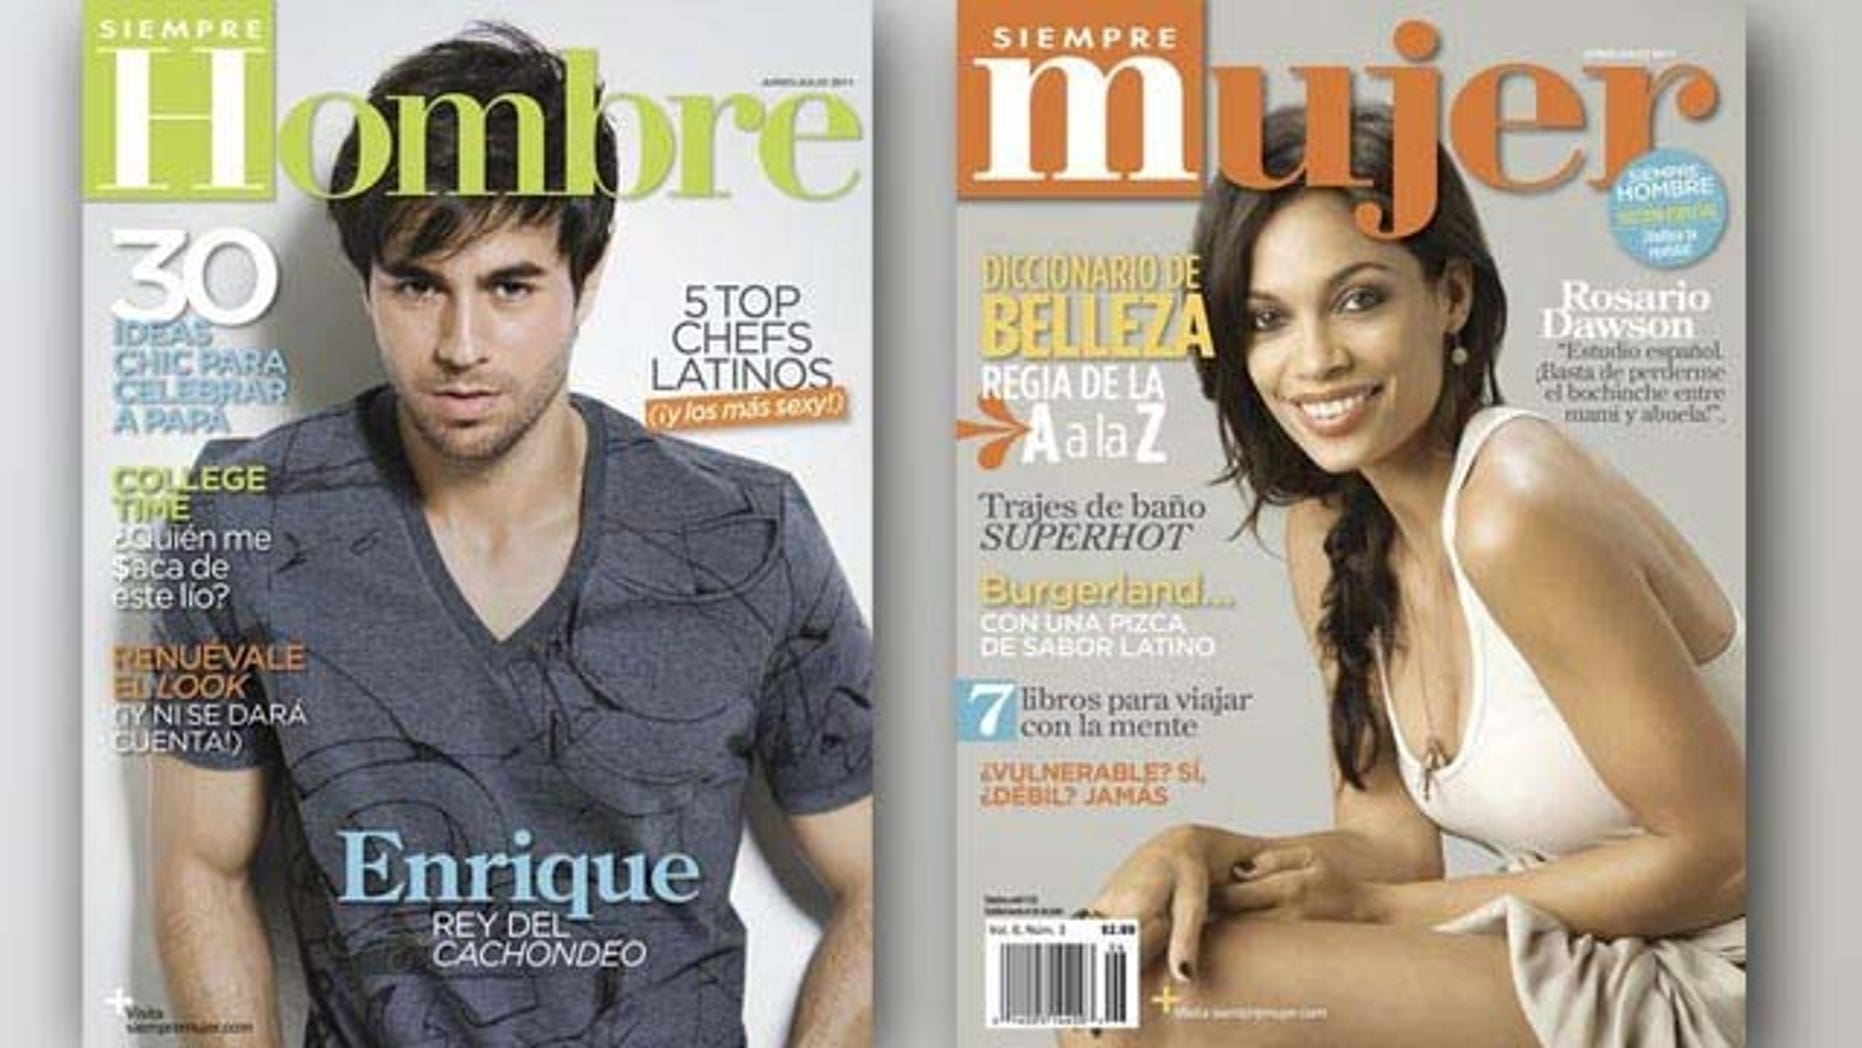 """June 10, 2011: Actress Rosario Dawson and singer Enrique Iglesias appear on the covers of the June/July issues of  """"Siempre Mujer"""" and """"Siempre Hombre"""" magazines. Dawson talks about her Latina roots, while Iglesias highlighted the importance of reinventing himself as an artist."""